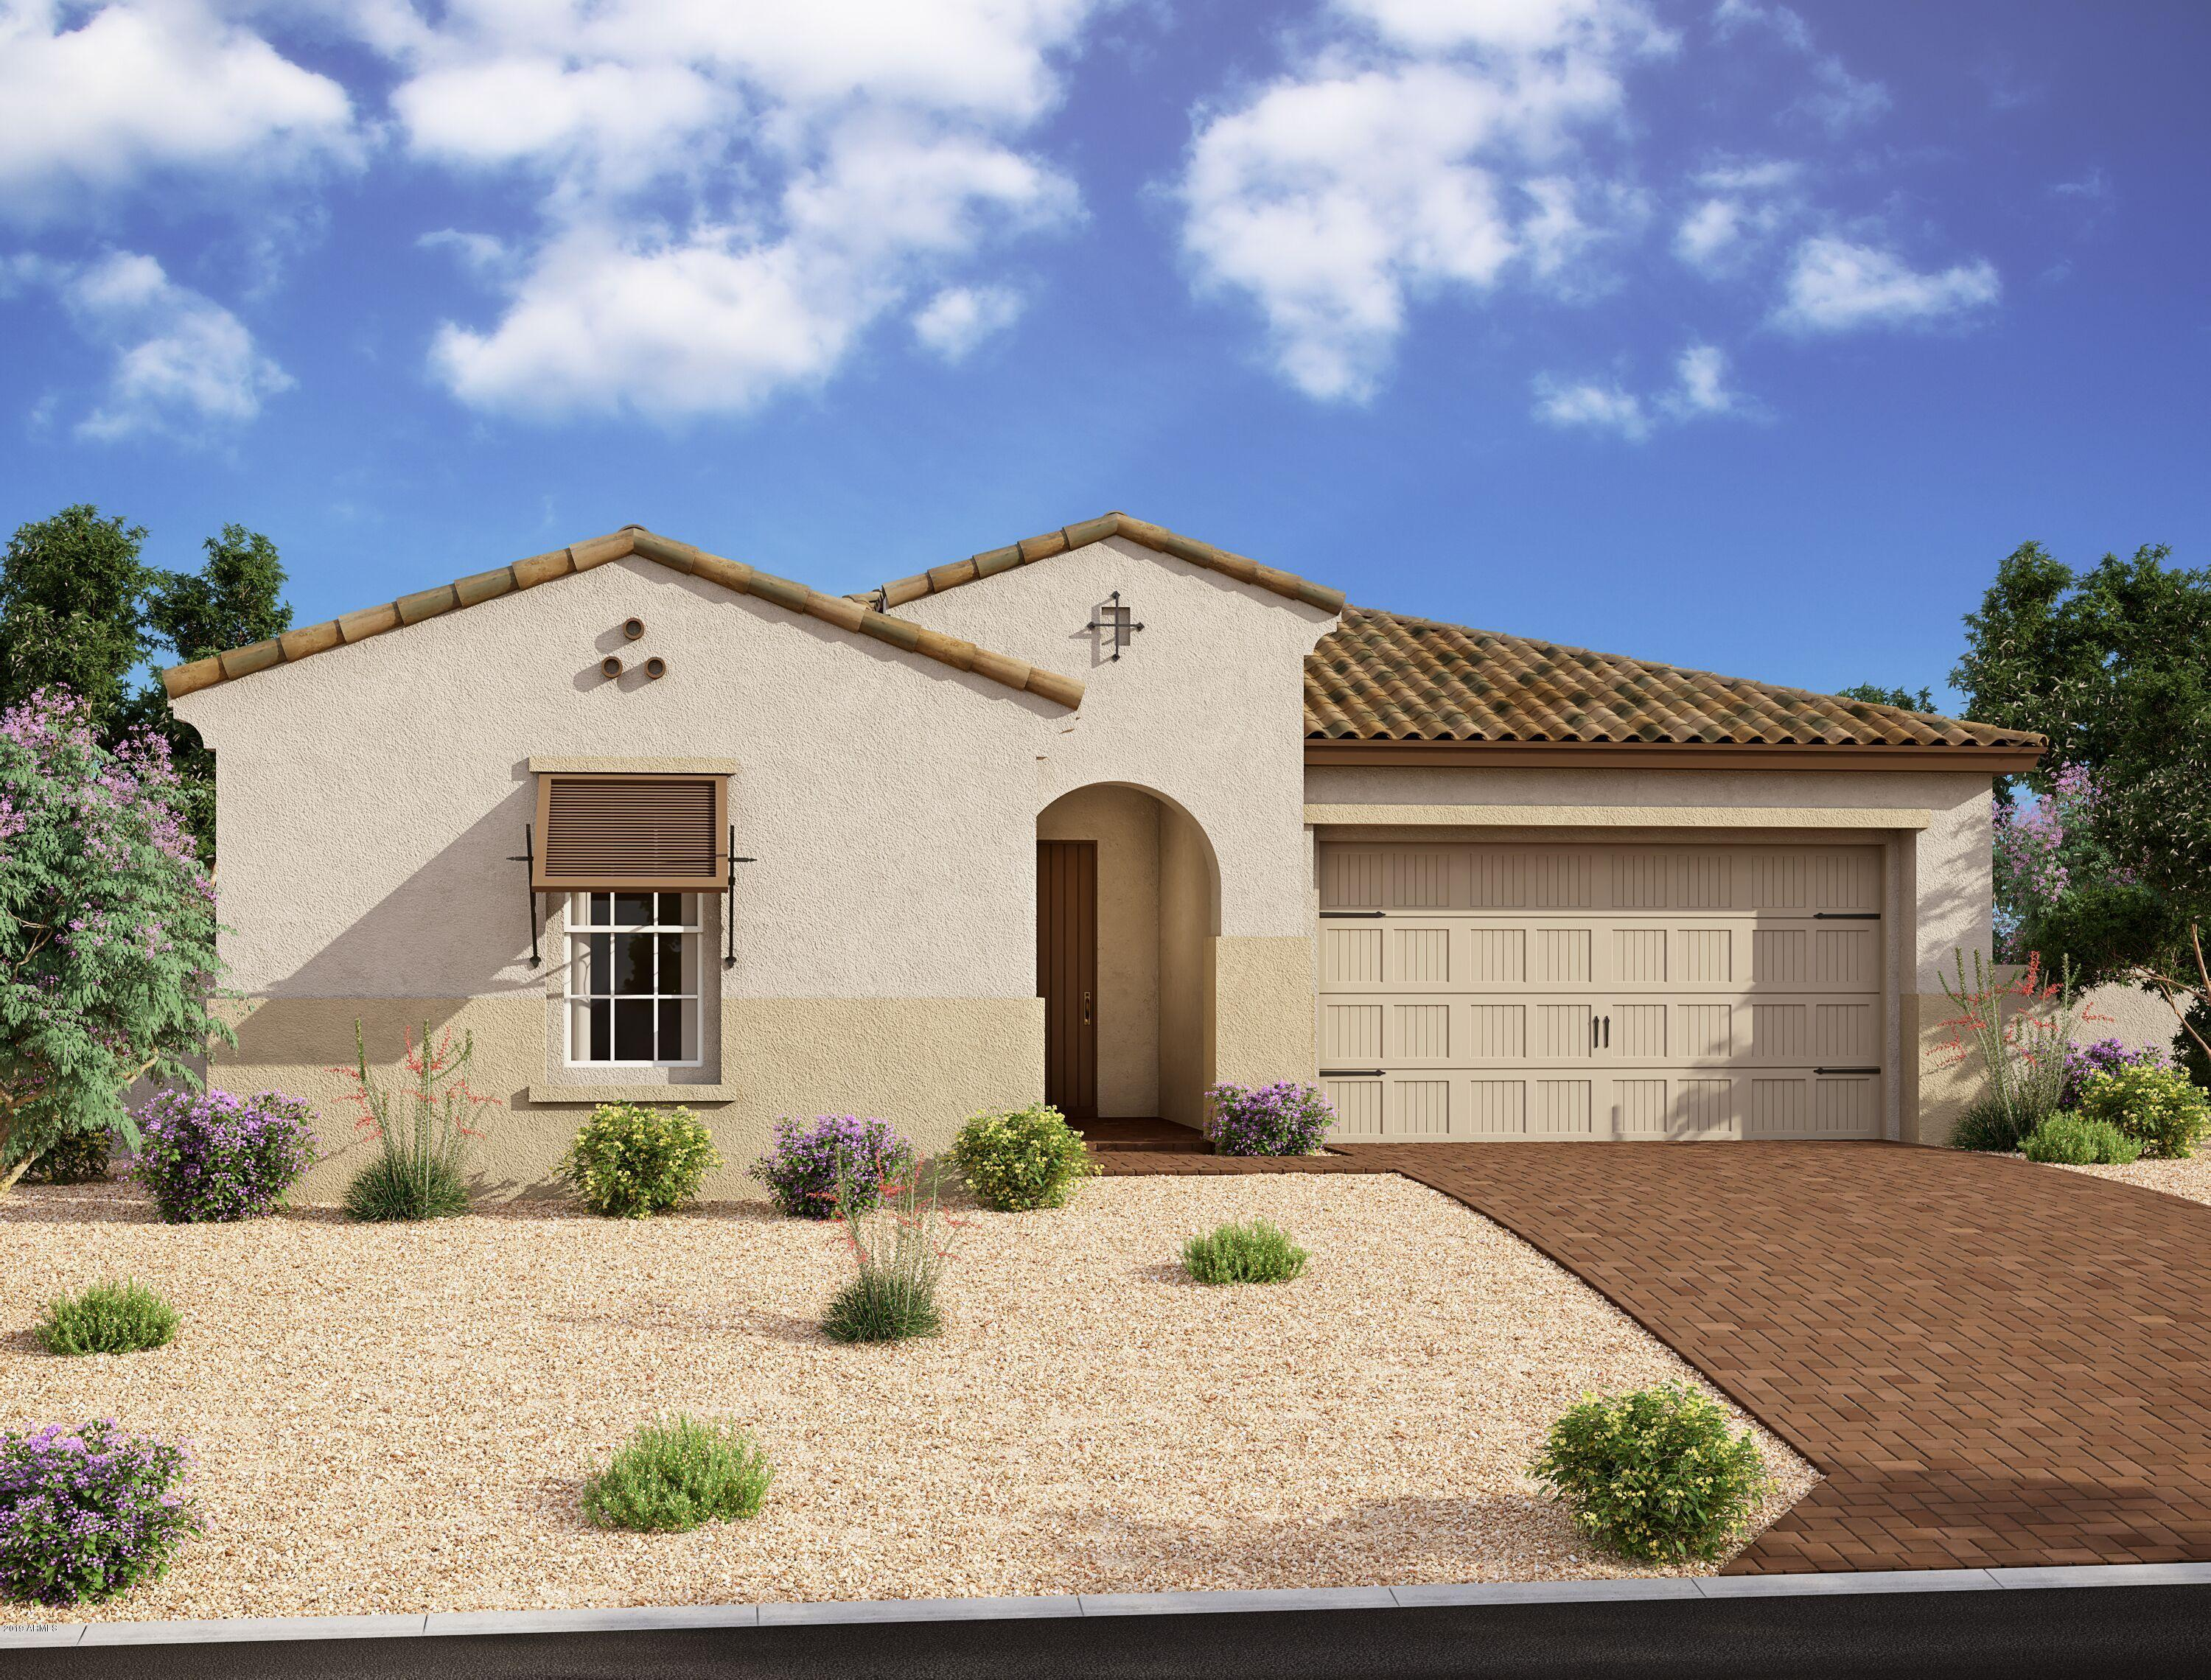 Photo of 10162 E SUPERNOVA Drive, Mesa, AZ 85212